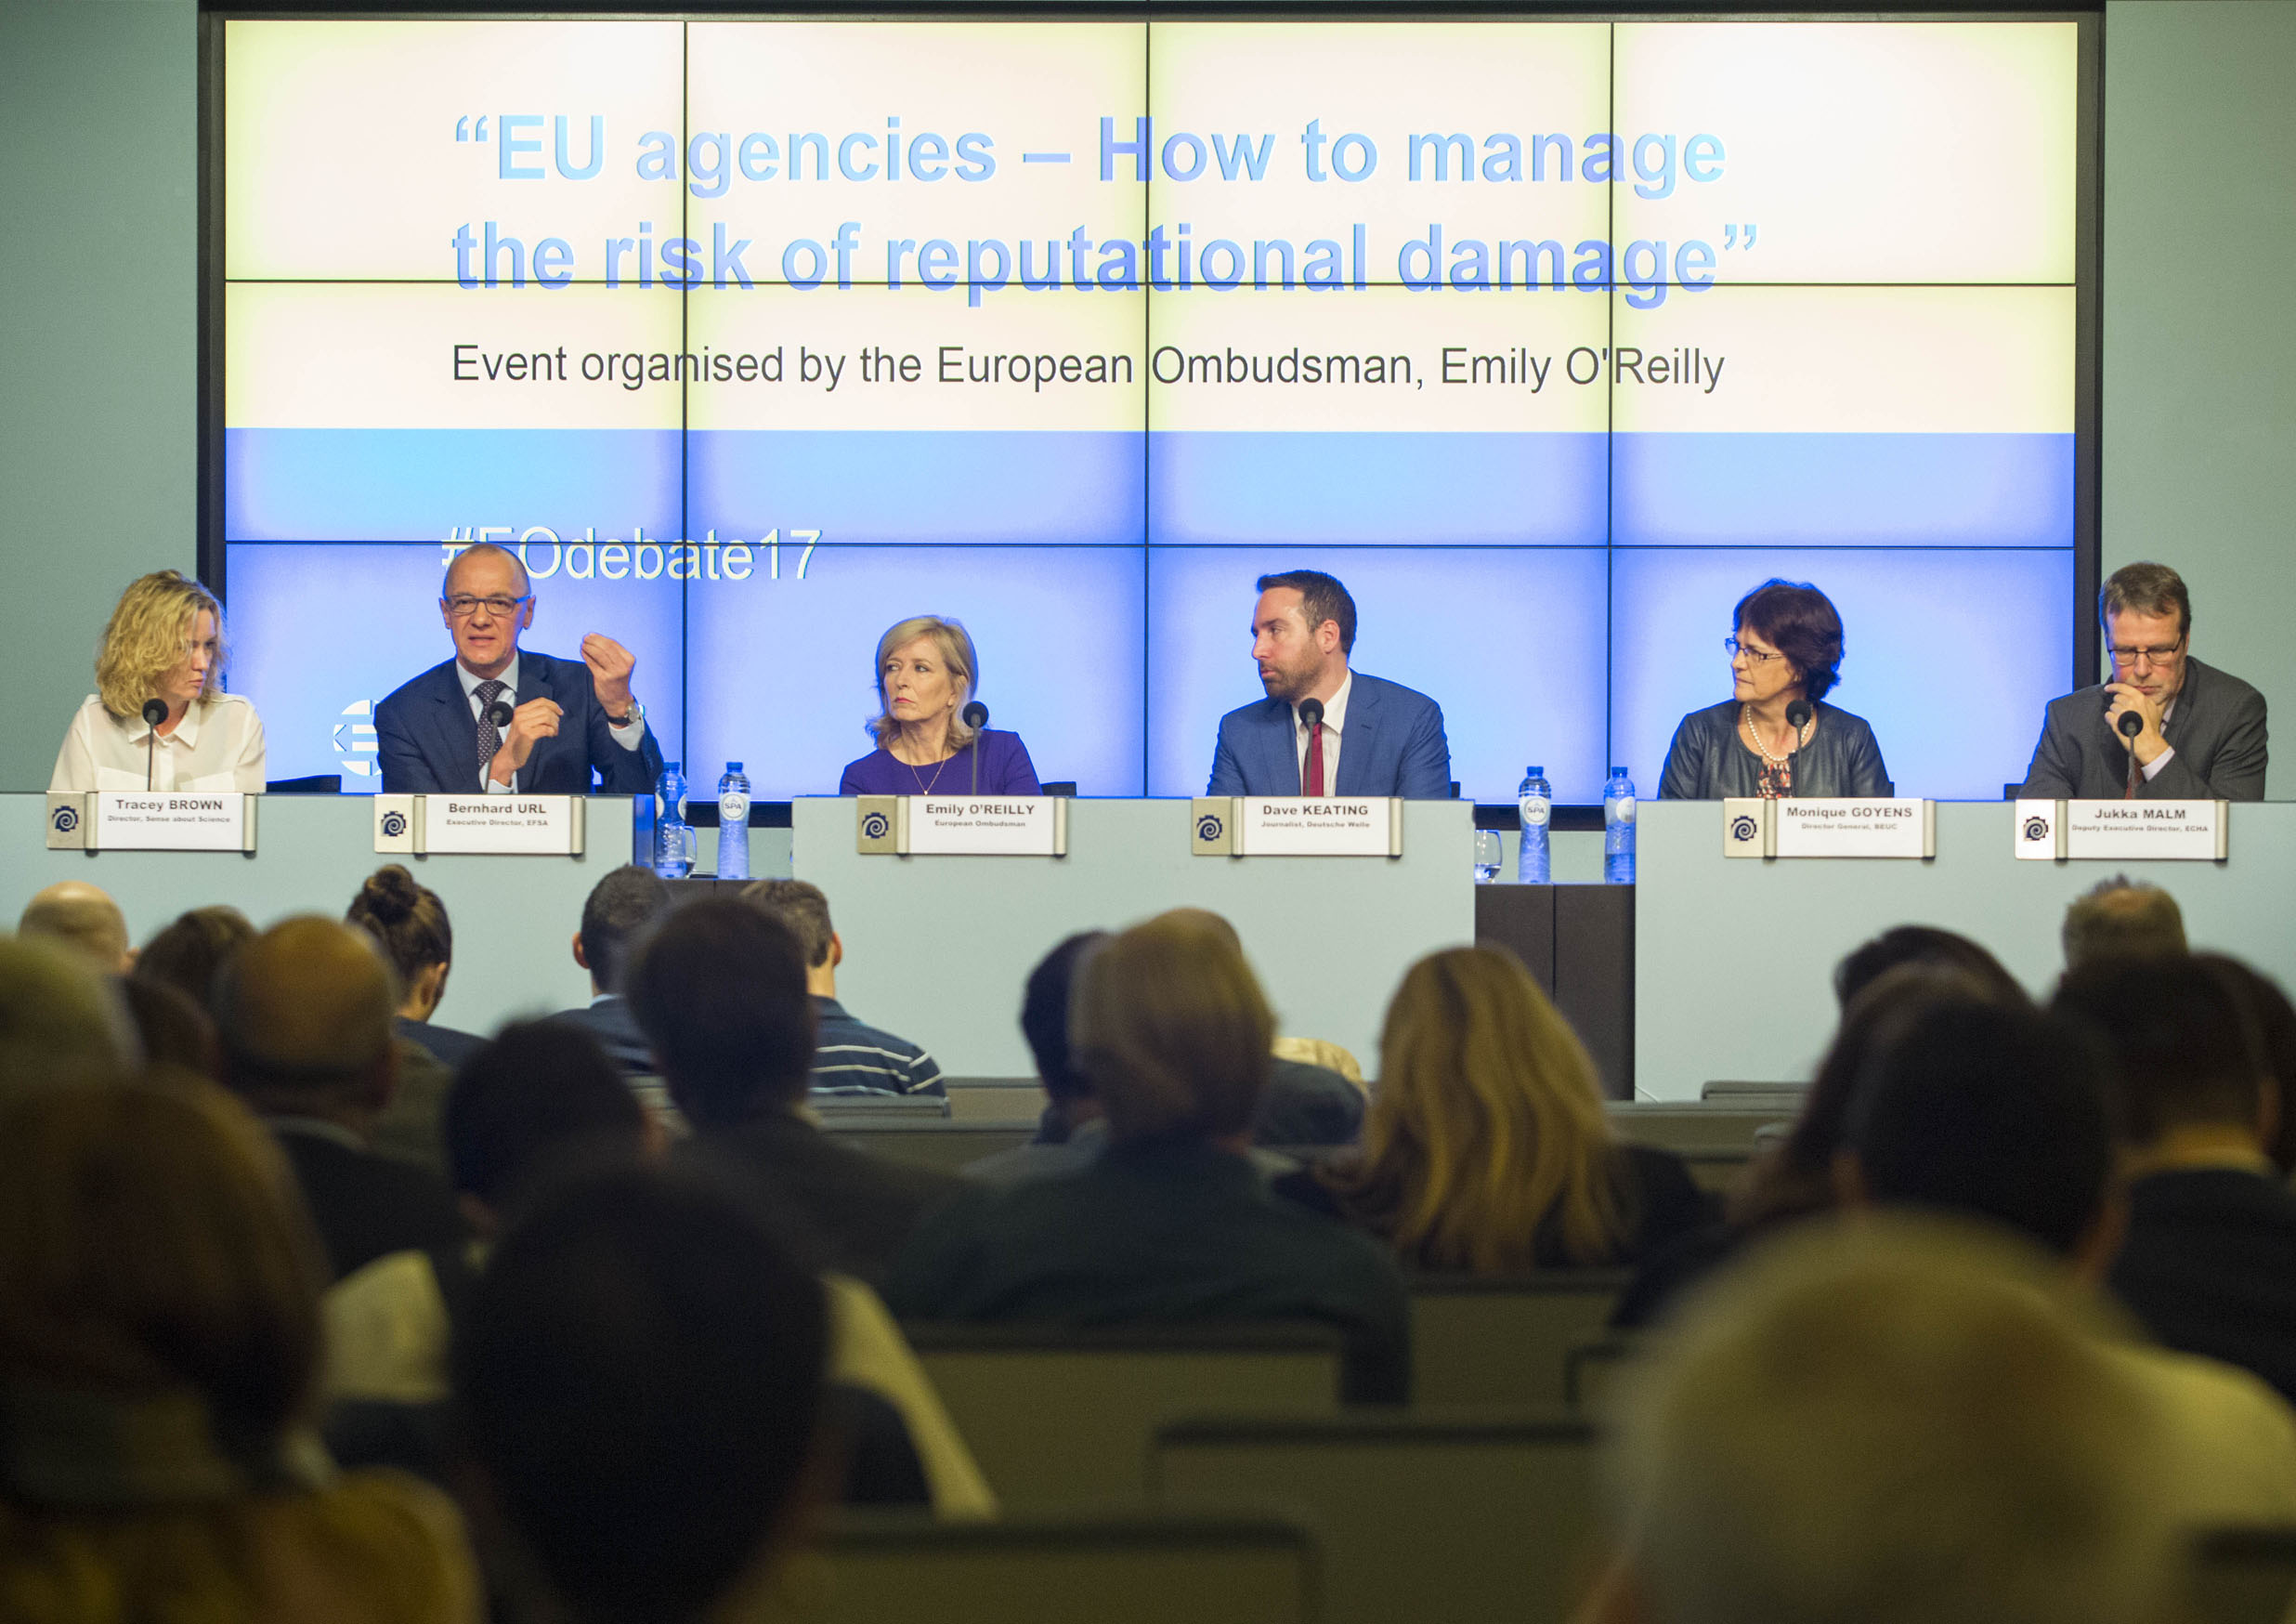 """The European Ombudsman's public event entitled """"EU agencies: How to manage the risk of reputational damage"""" in October with panellists (from left to right): Tracey Brown, Director of Sense about Science; Bernhard Url, Executive Director of EFSA; Emily O'Reilly, the European Ombudsman; event moderator, Dave Keating; Monique Goyens, Director-General of the BEUC; and Jukka Malm, Deputy Executive Director of the ECHA."""